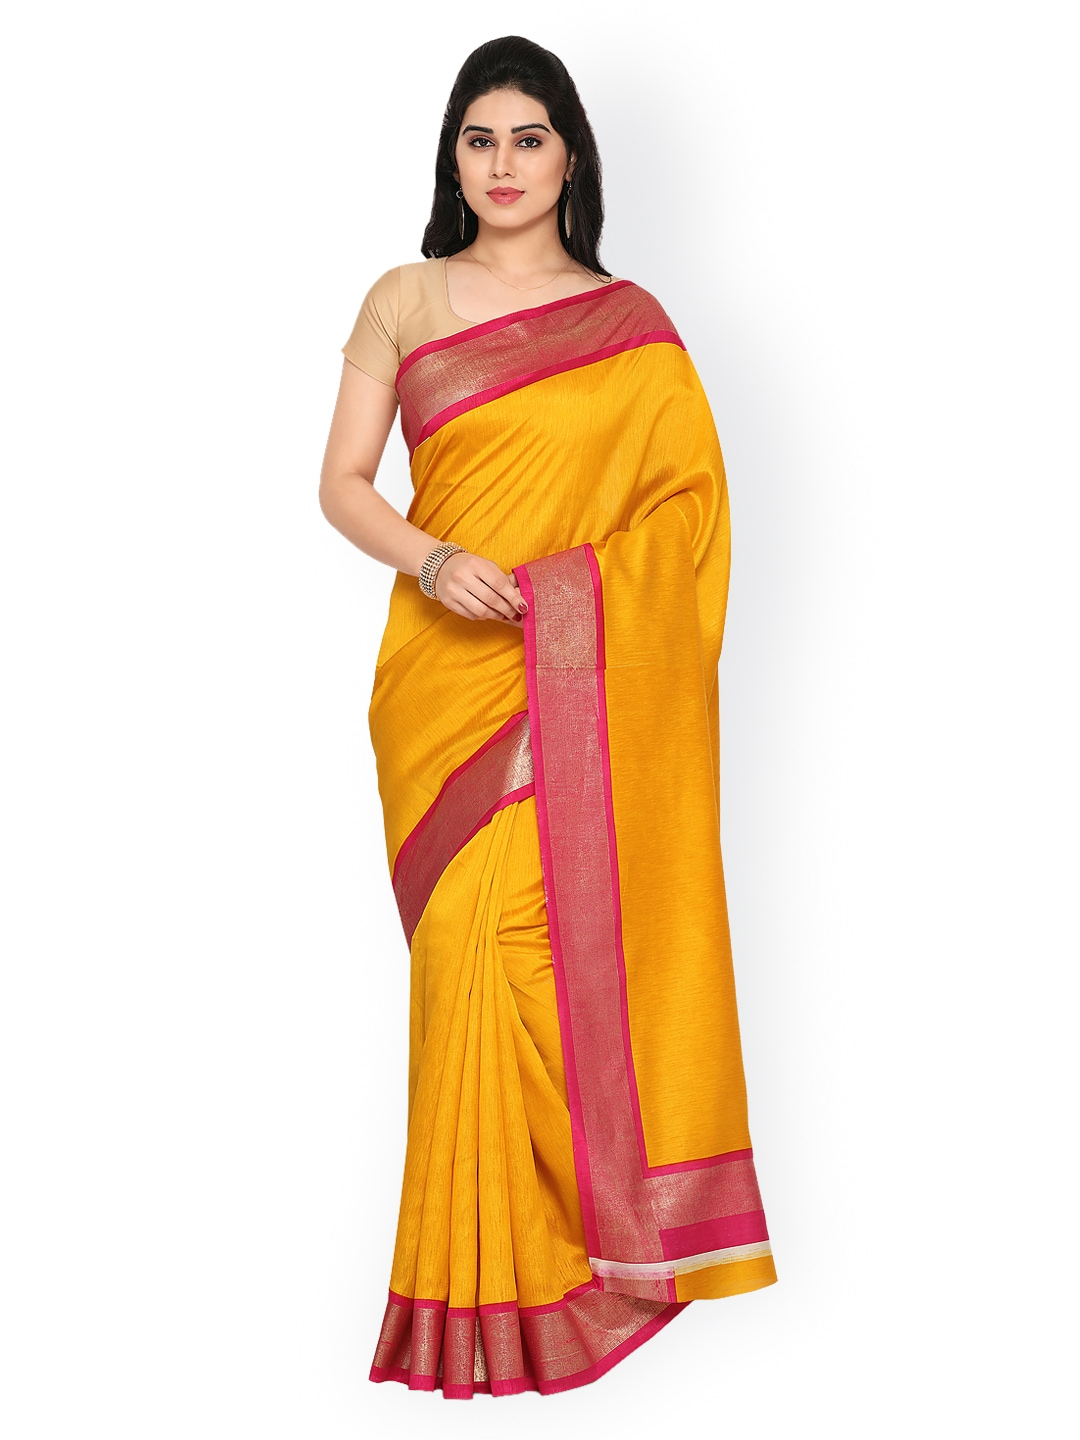 dcc47e10b0 Sarees Mall Yellow - Buy Sarees Mall Yellow online in India